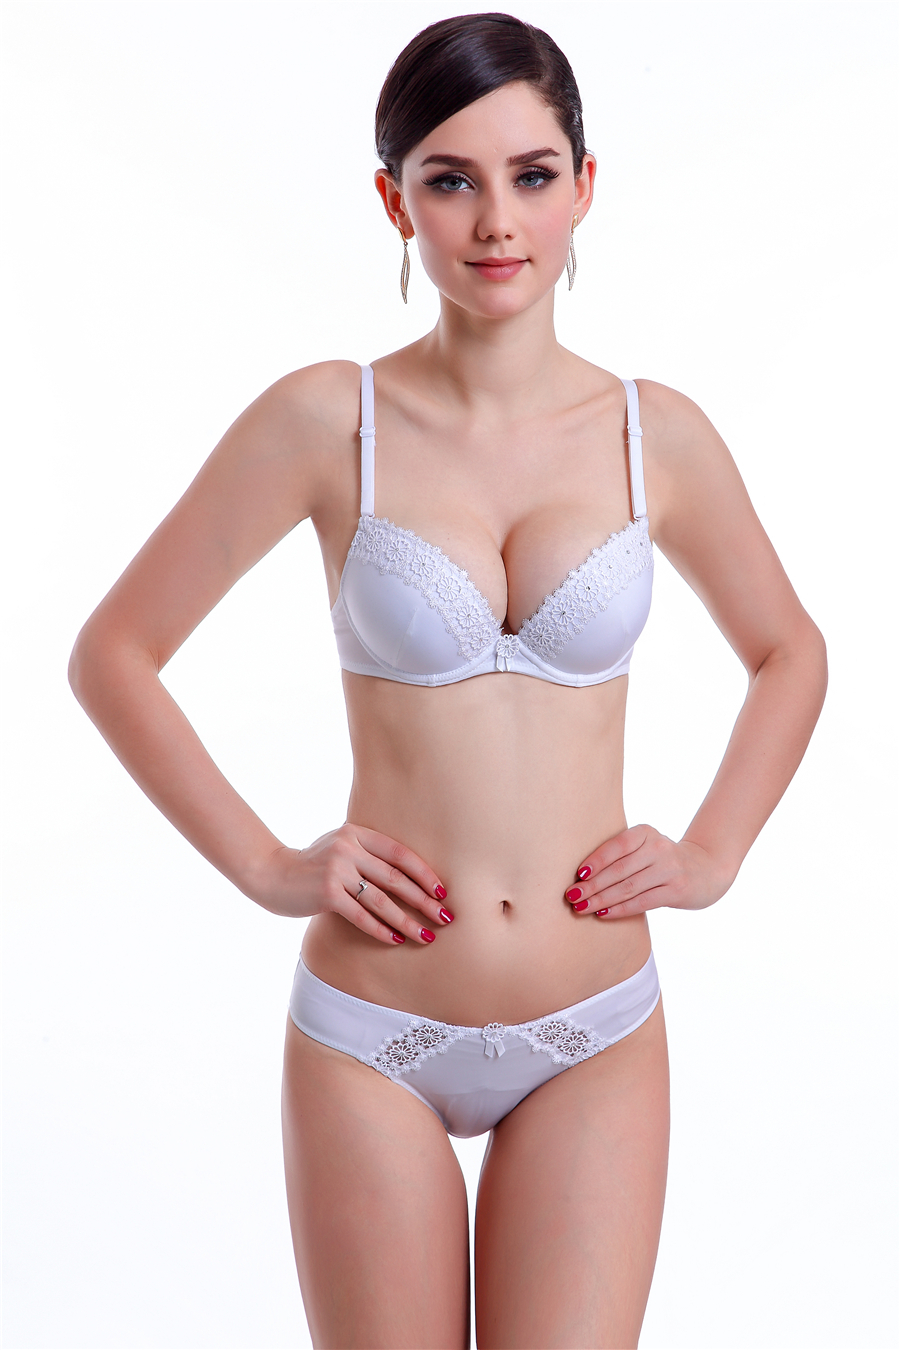 Hot Sale High Quality Bra Set Luxurious And Noble Deep V-neck Lace Bra Set Breasted Push Up Underwear Flower And Satins B  C cup zebra underwear